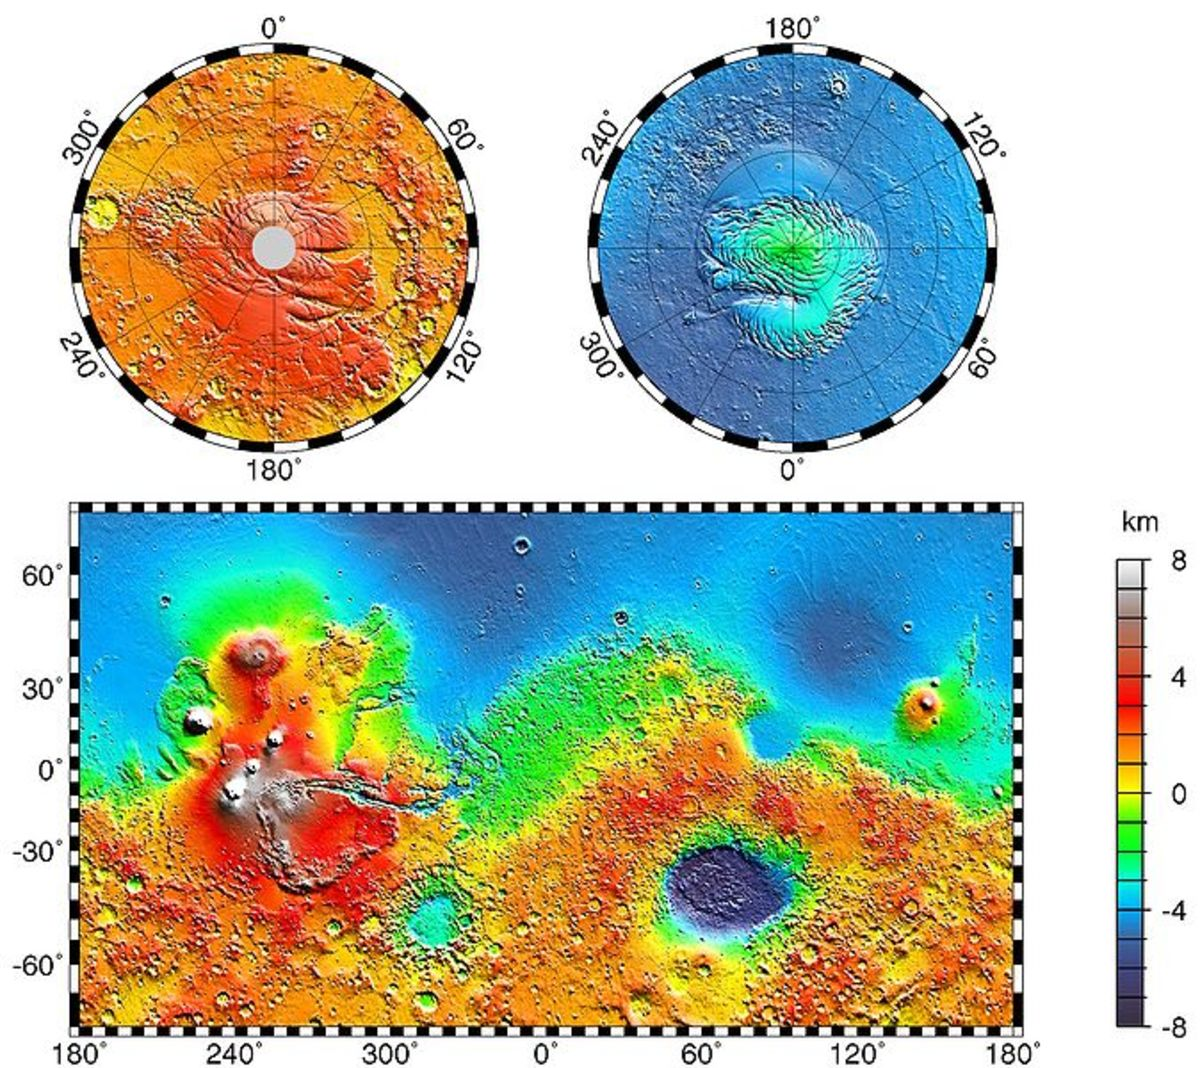 Typographical map of Mars.